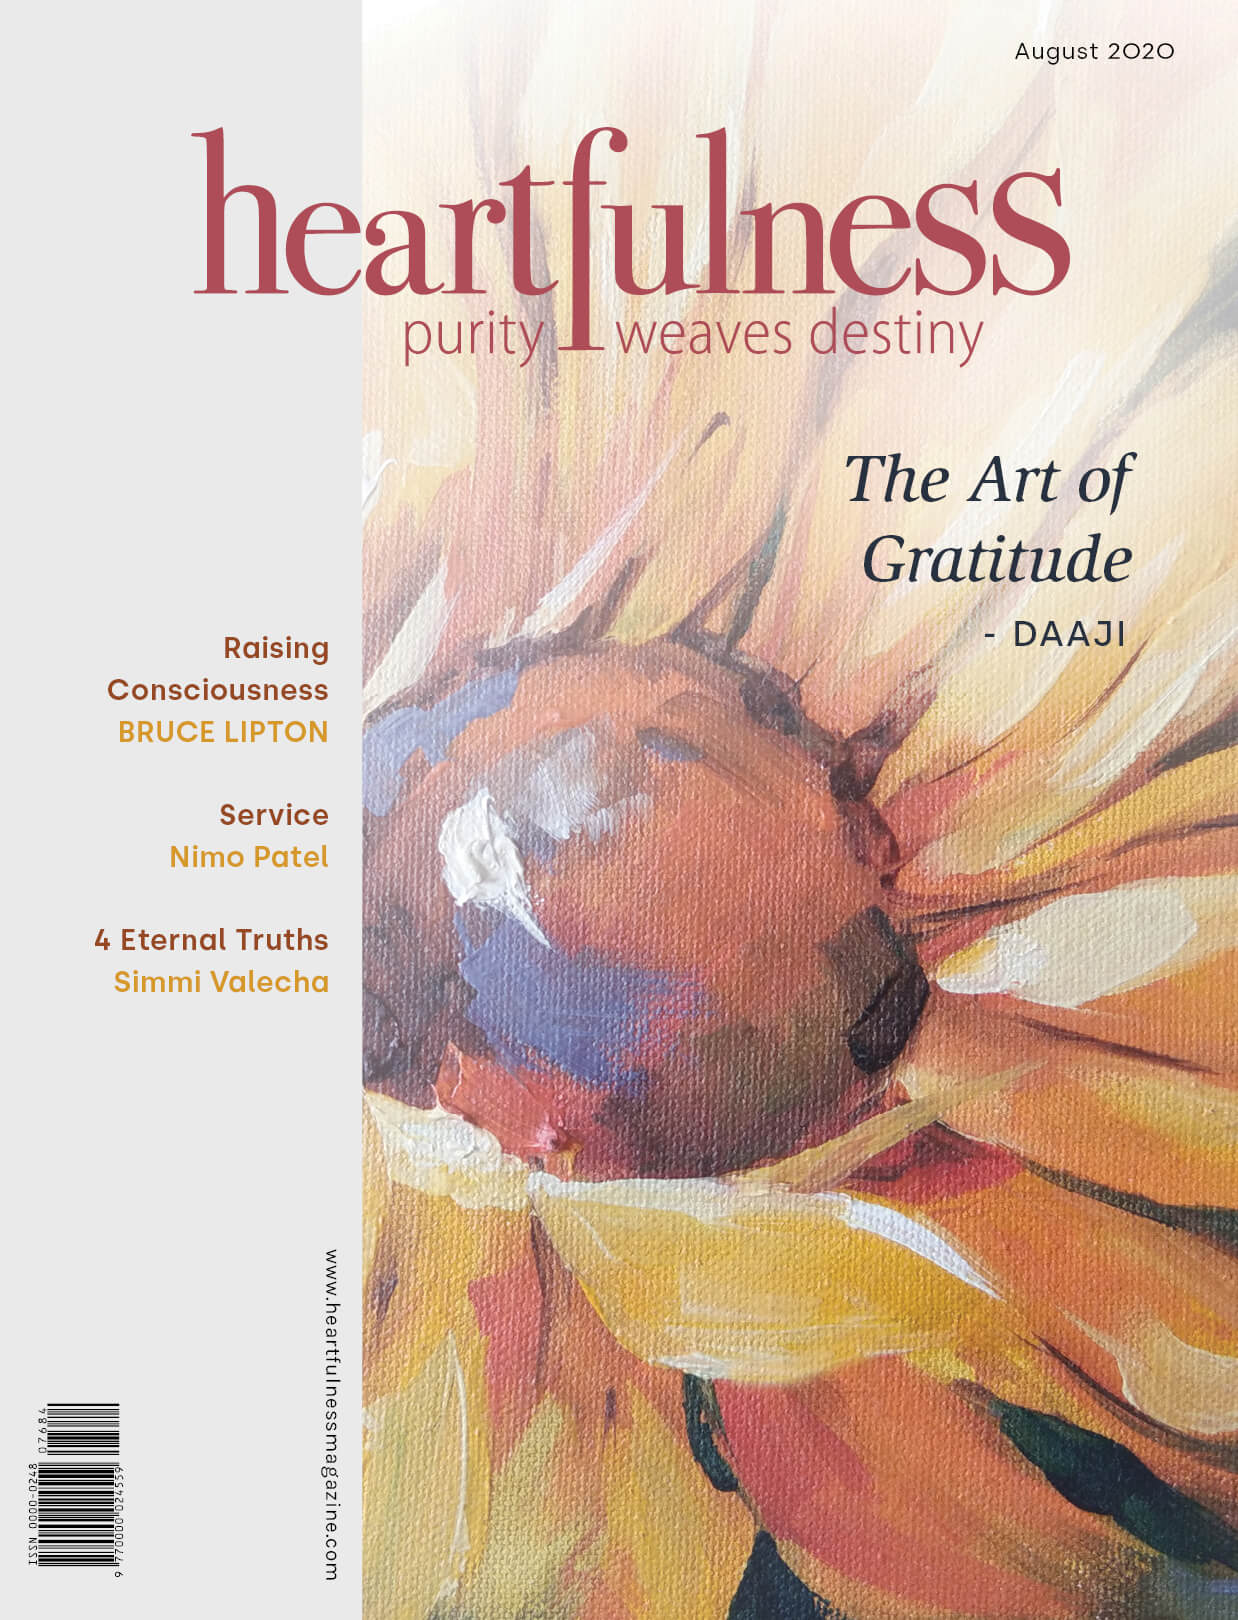 Heartfulness-magazine-August2020